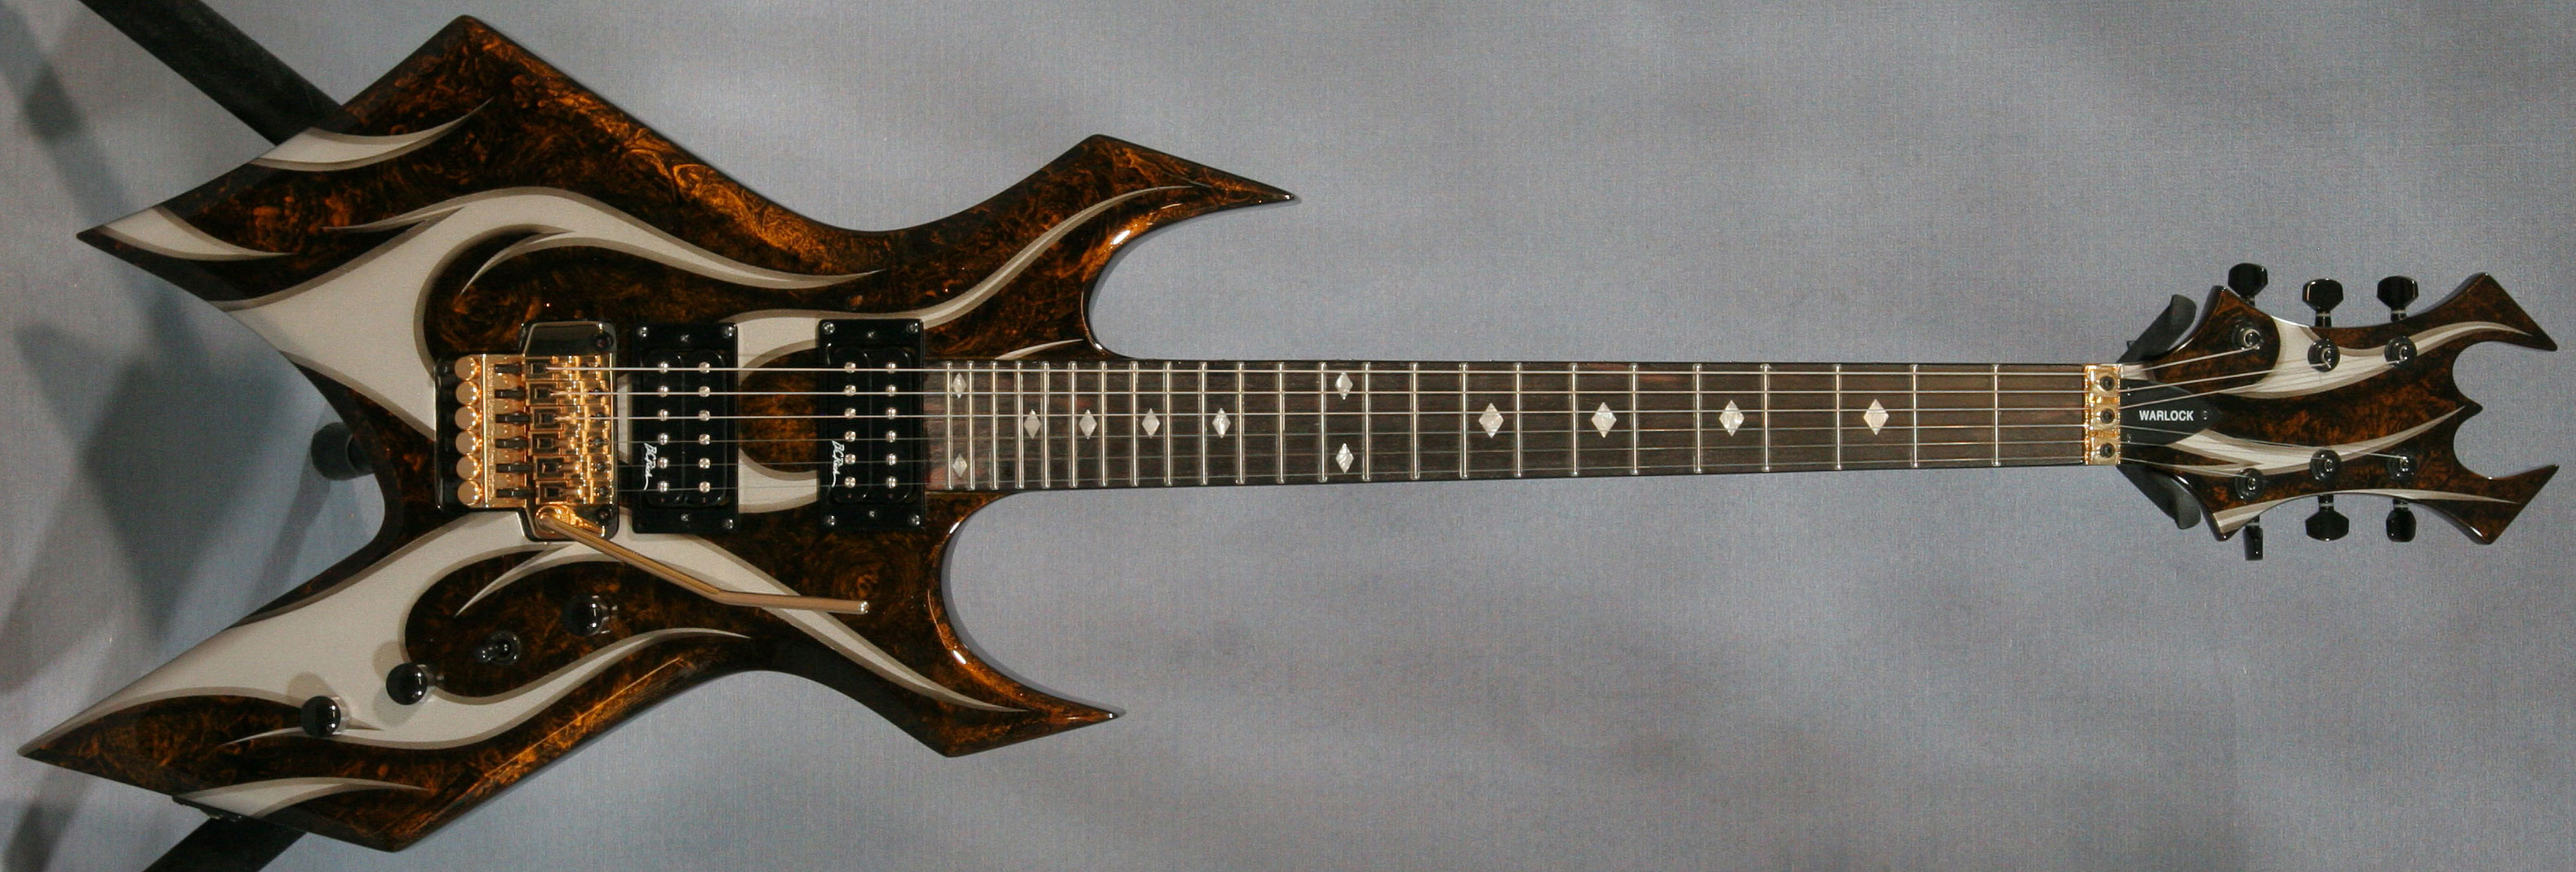 Bc Rich Warlock Bronze Series Wiring Diagram Libraries Library